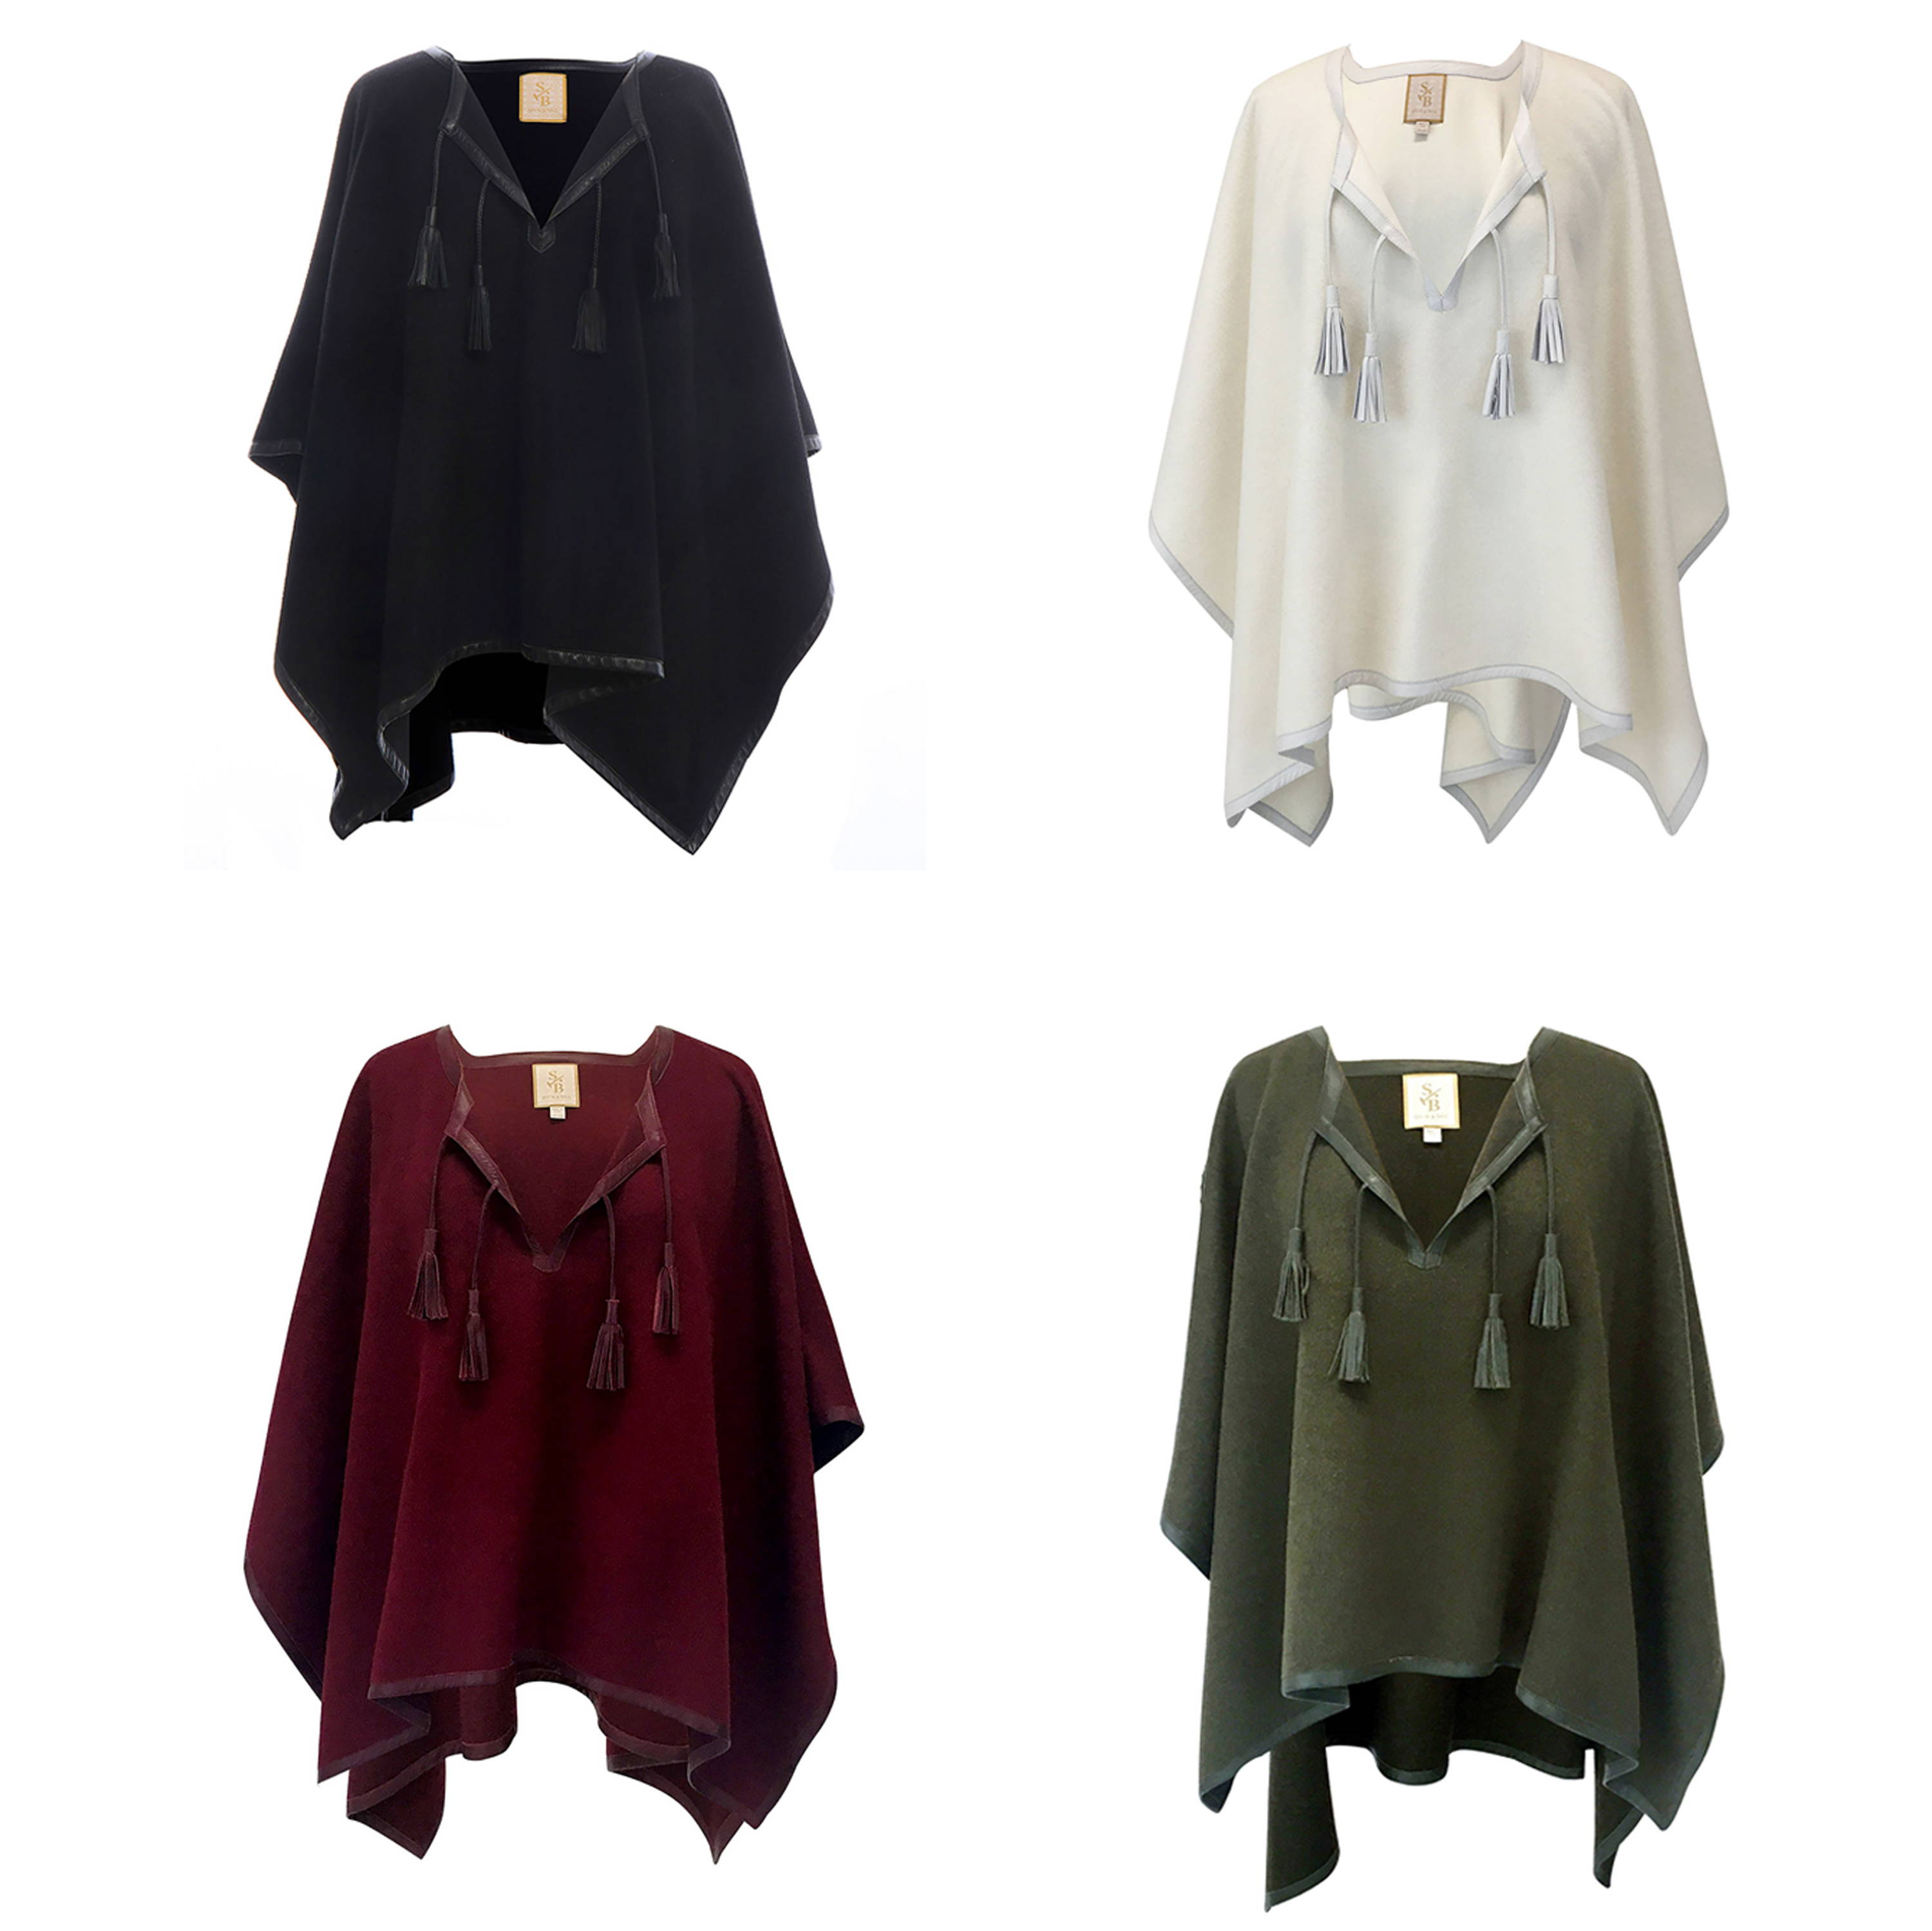 Collection of sustainable alpaca leather trim ponchos in black, stone/white, burgundy and olive green - Stick & Ball